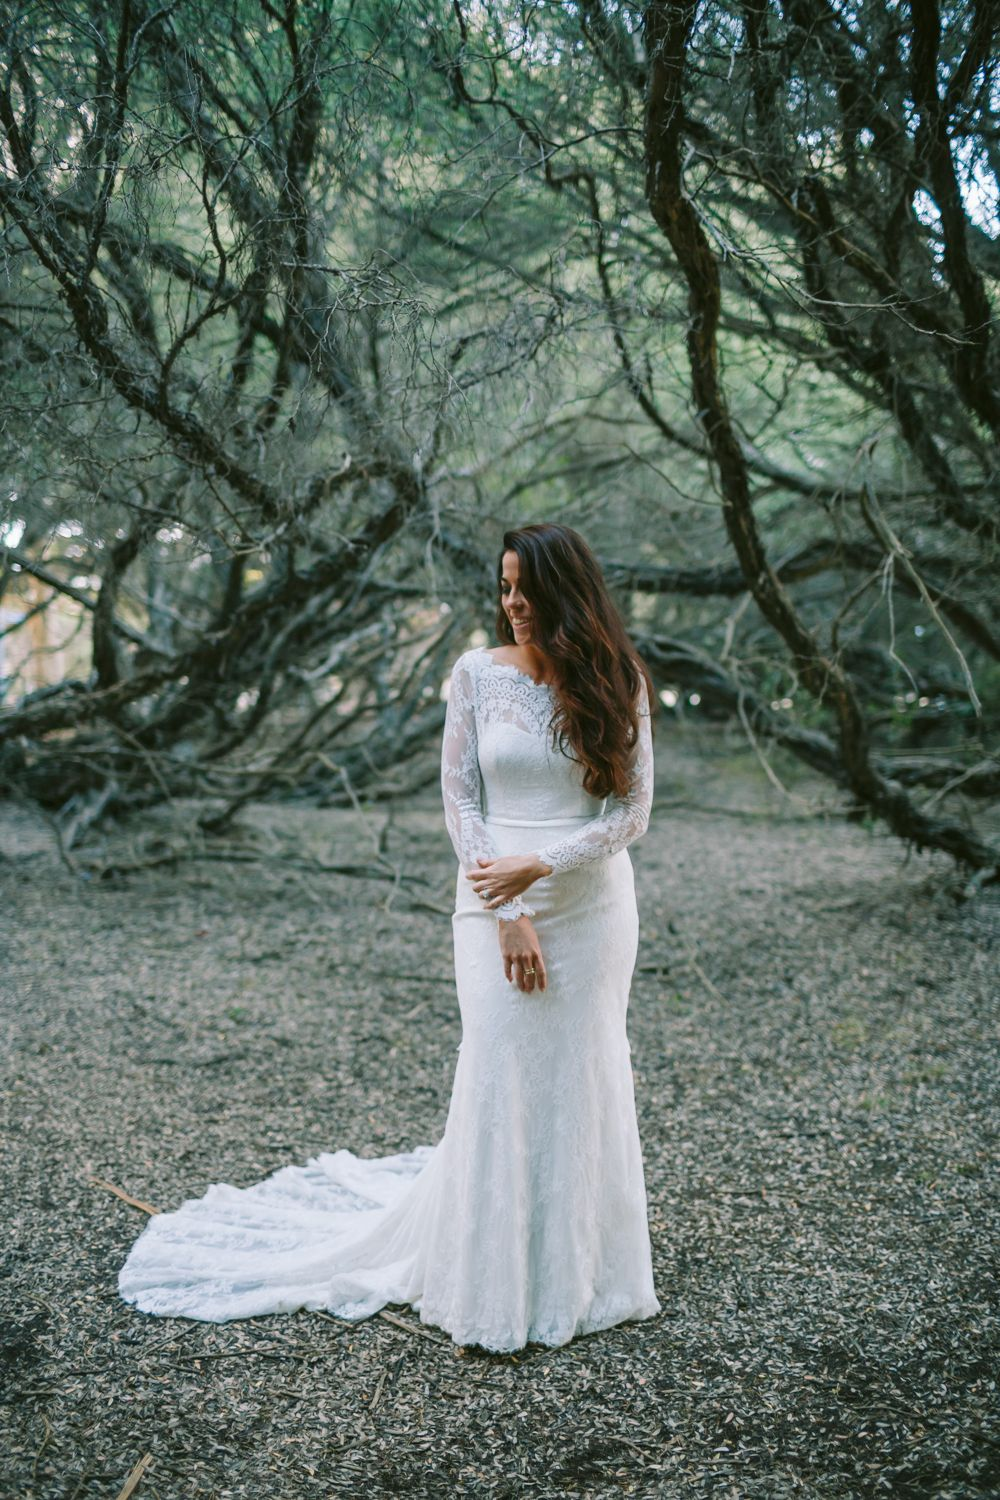 A long-sleeved Mariana Hardwick wedding gown | I Take You